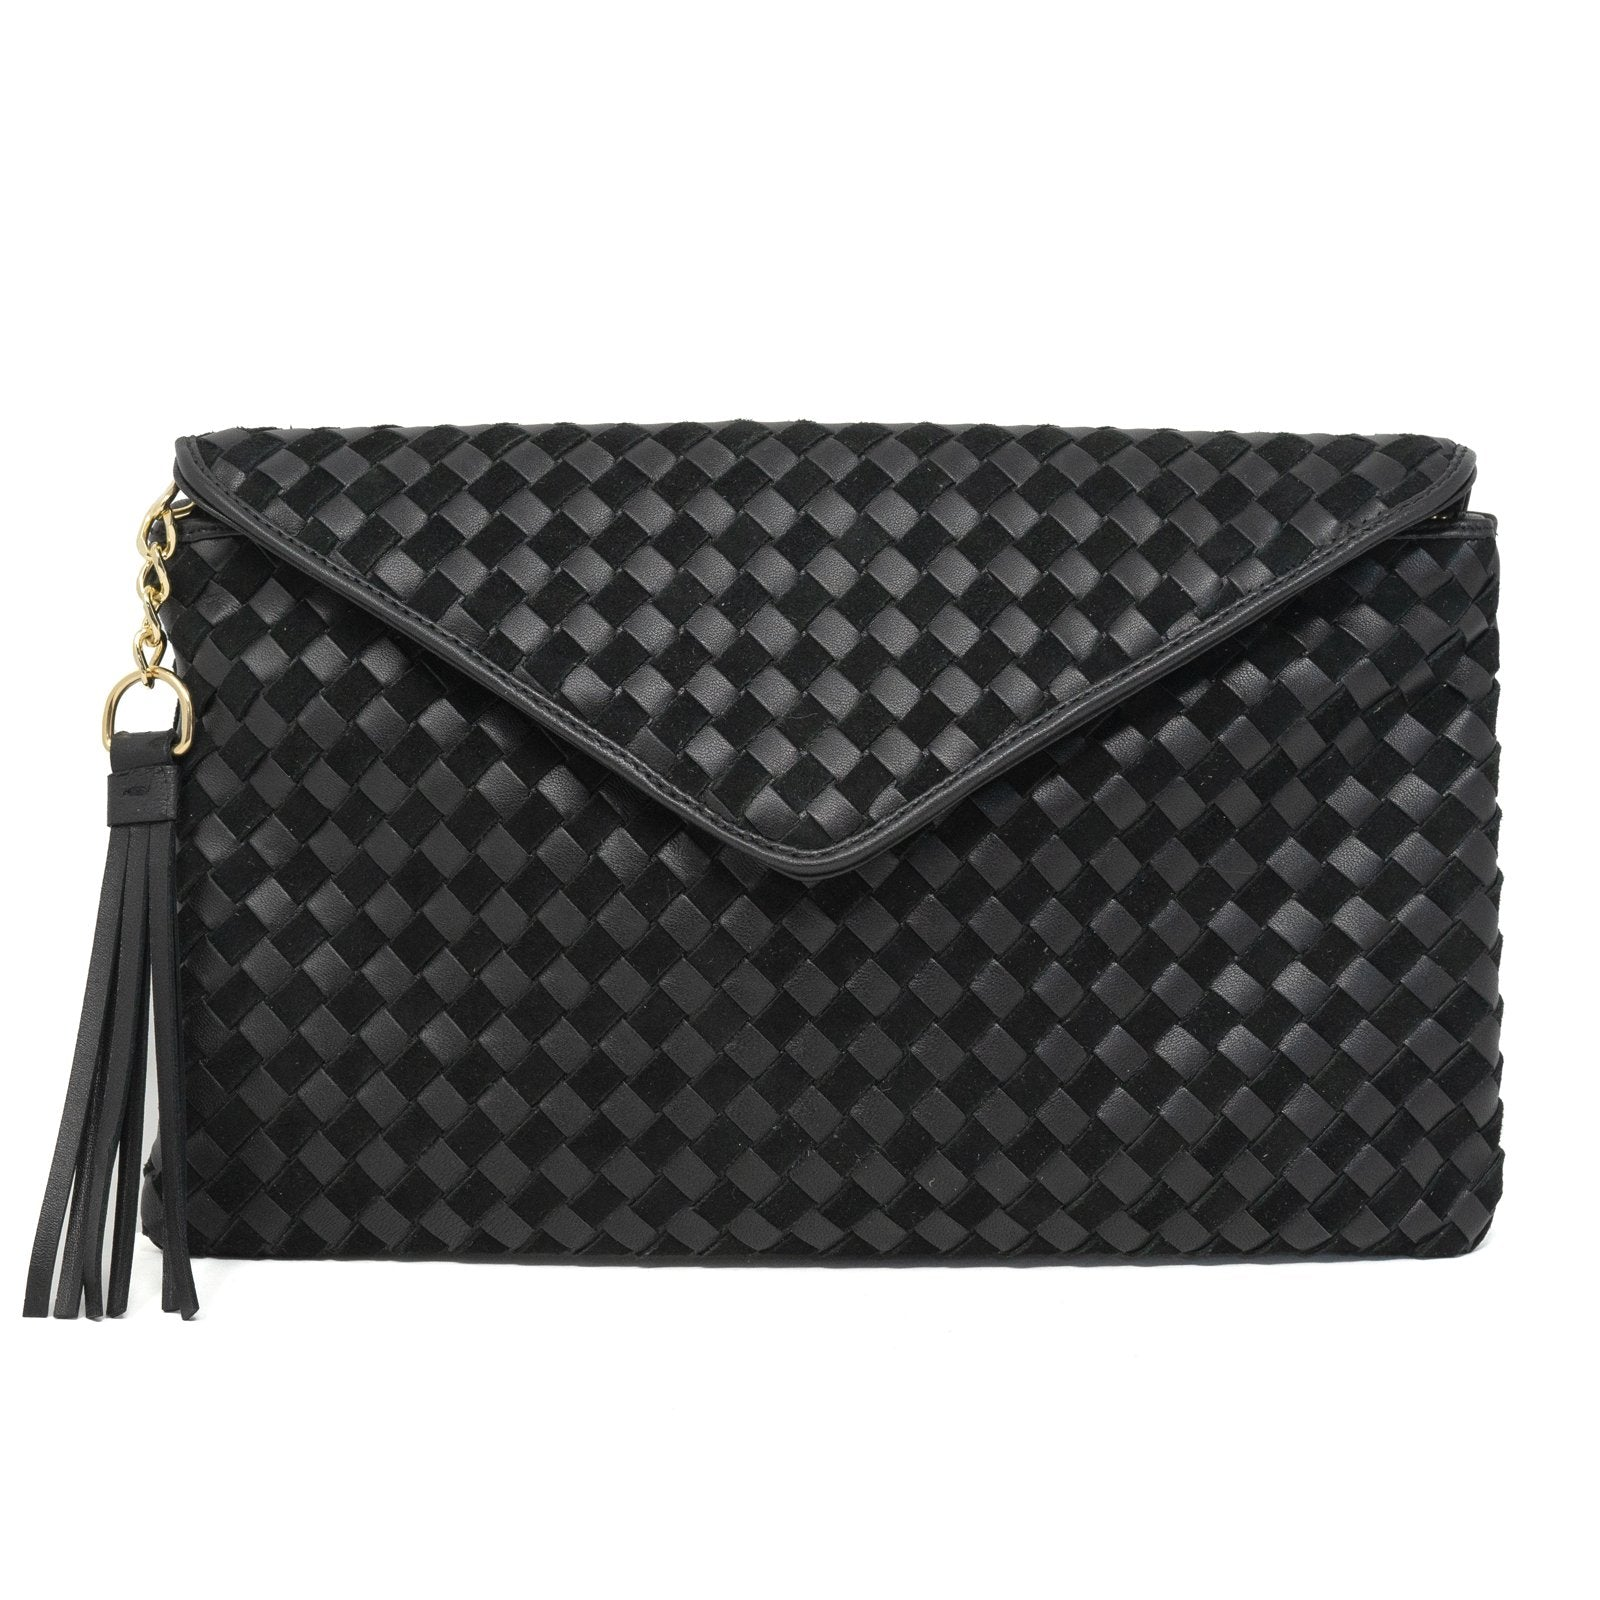 Women Intrecciato Leather Clutch Intrecciato Quadro Black - Jennifer Tattanelli